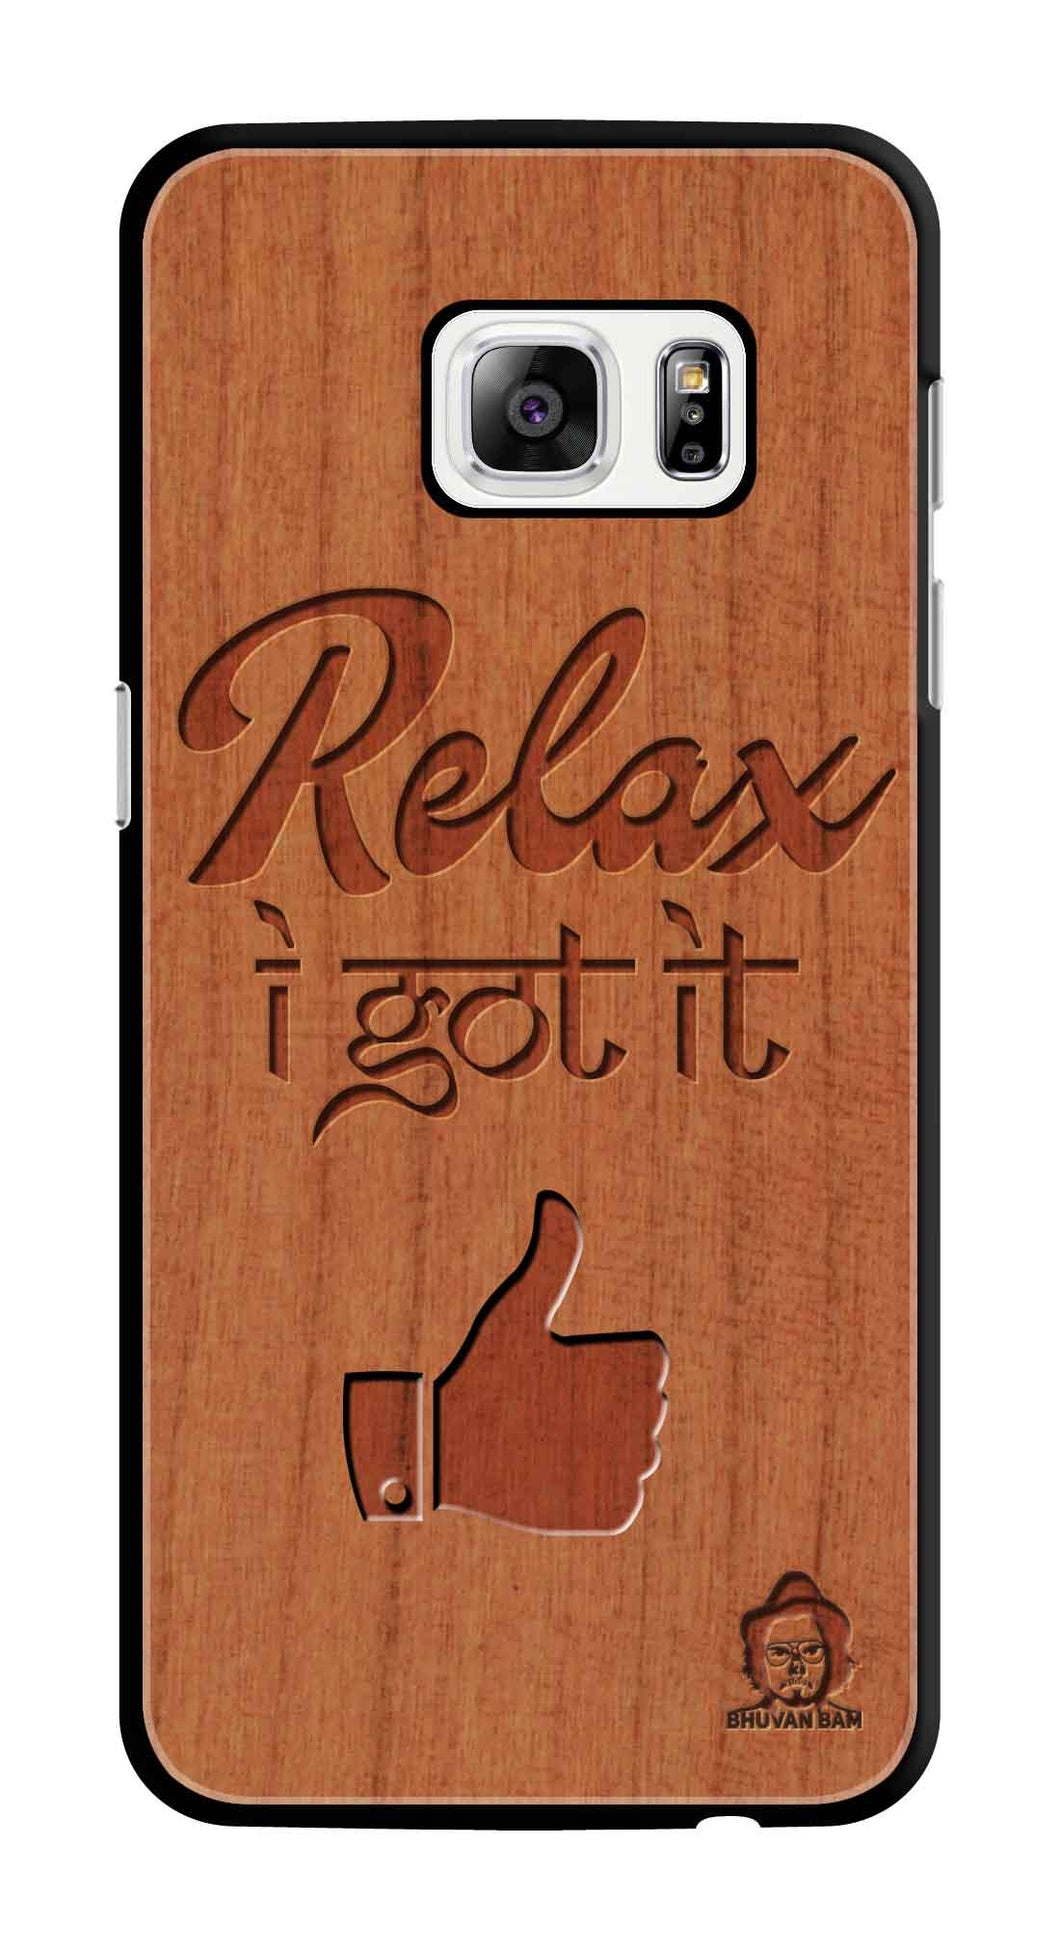 Cherry Wood Sameer Edition for S7 Edge